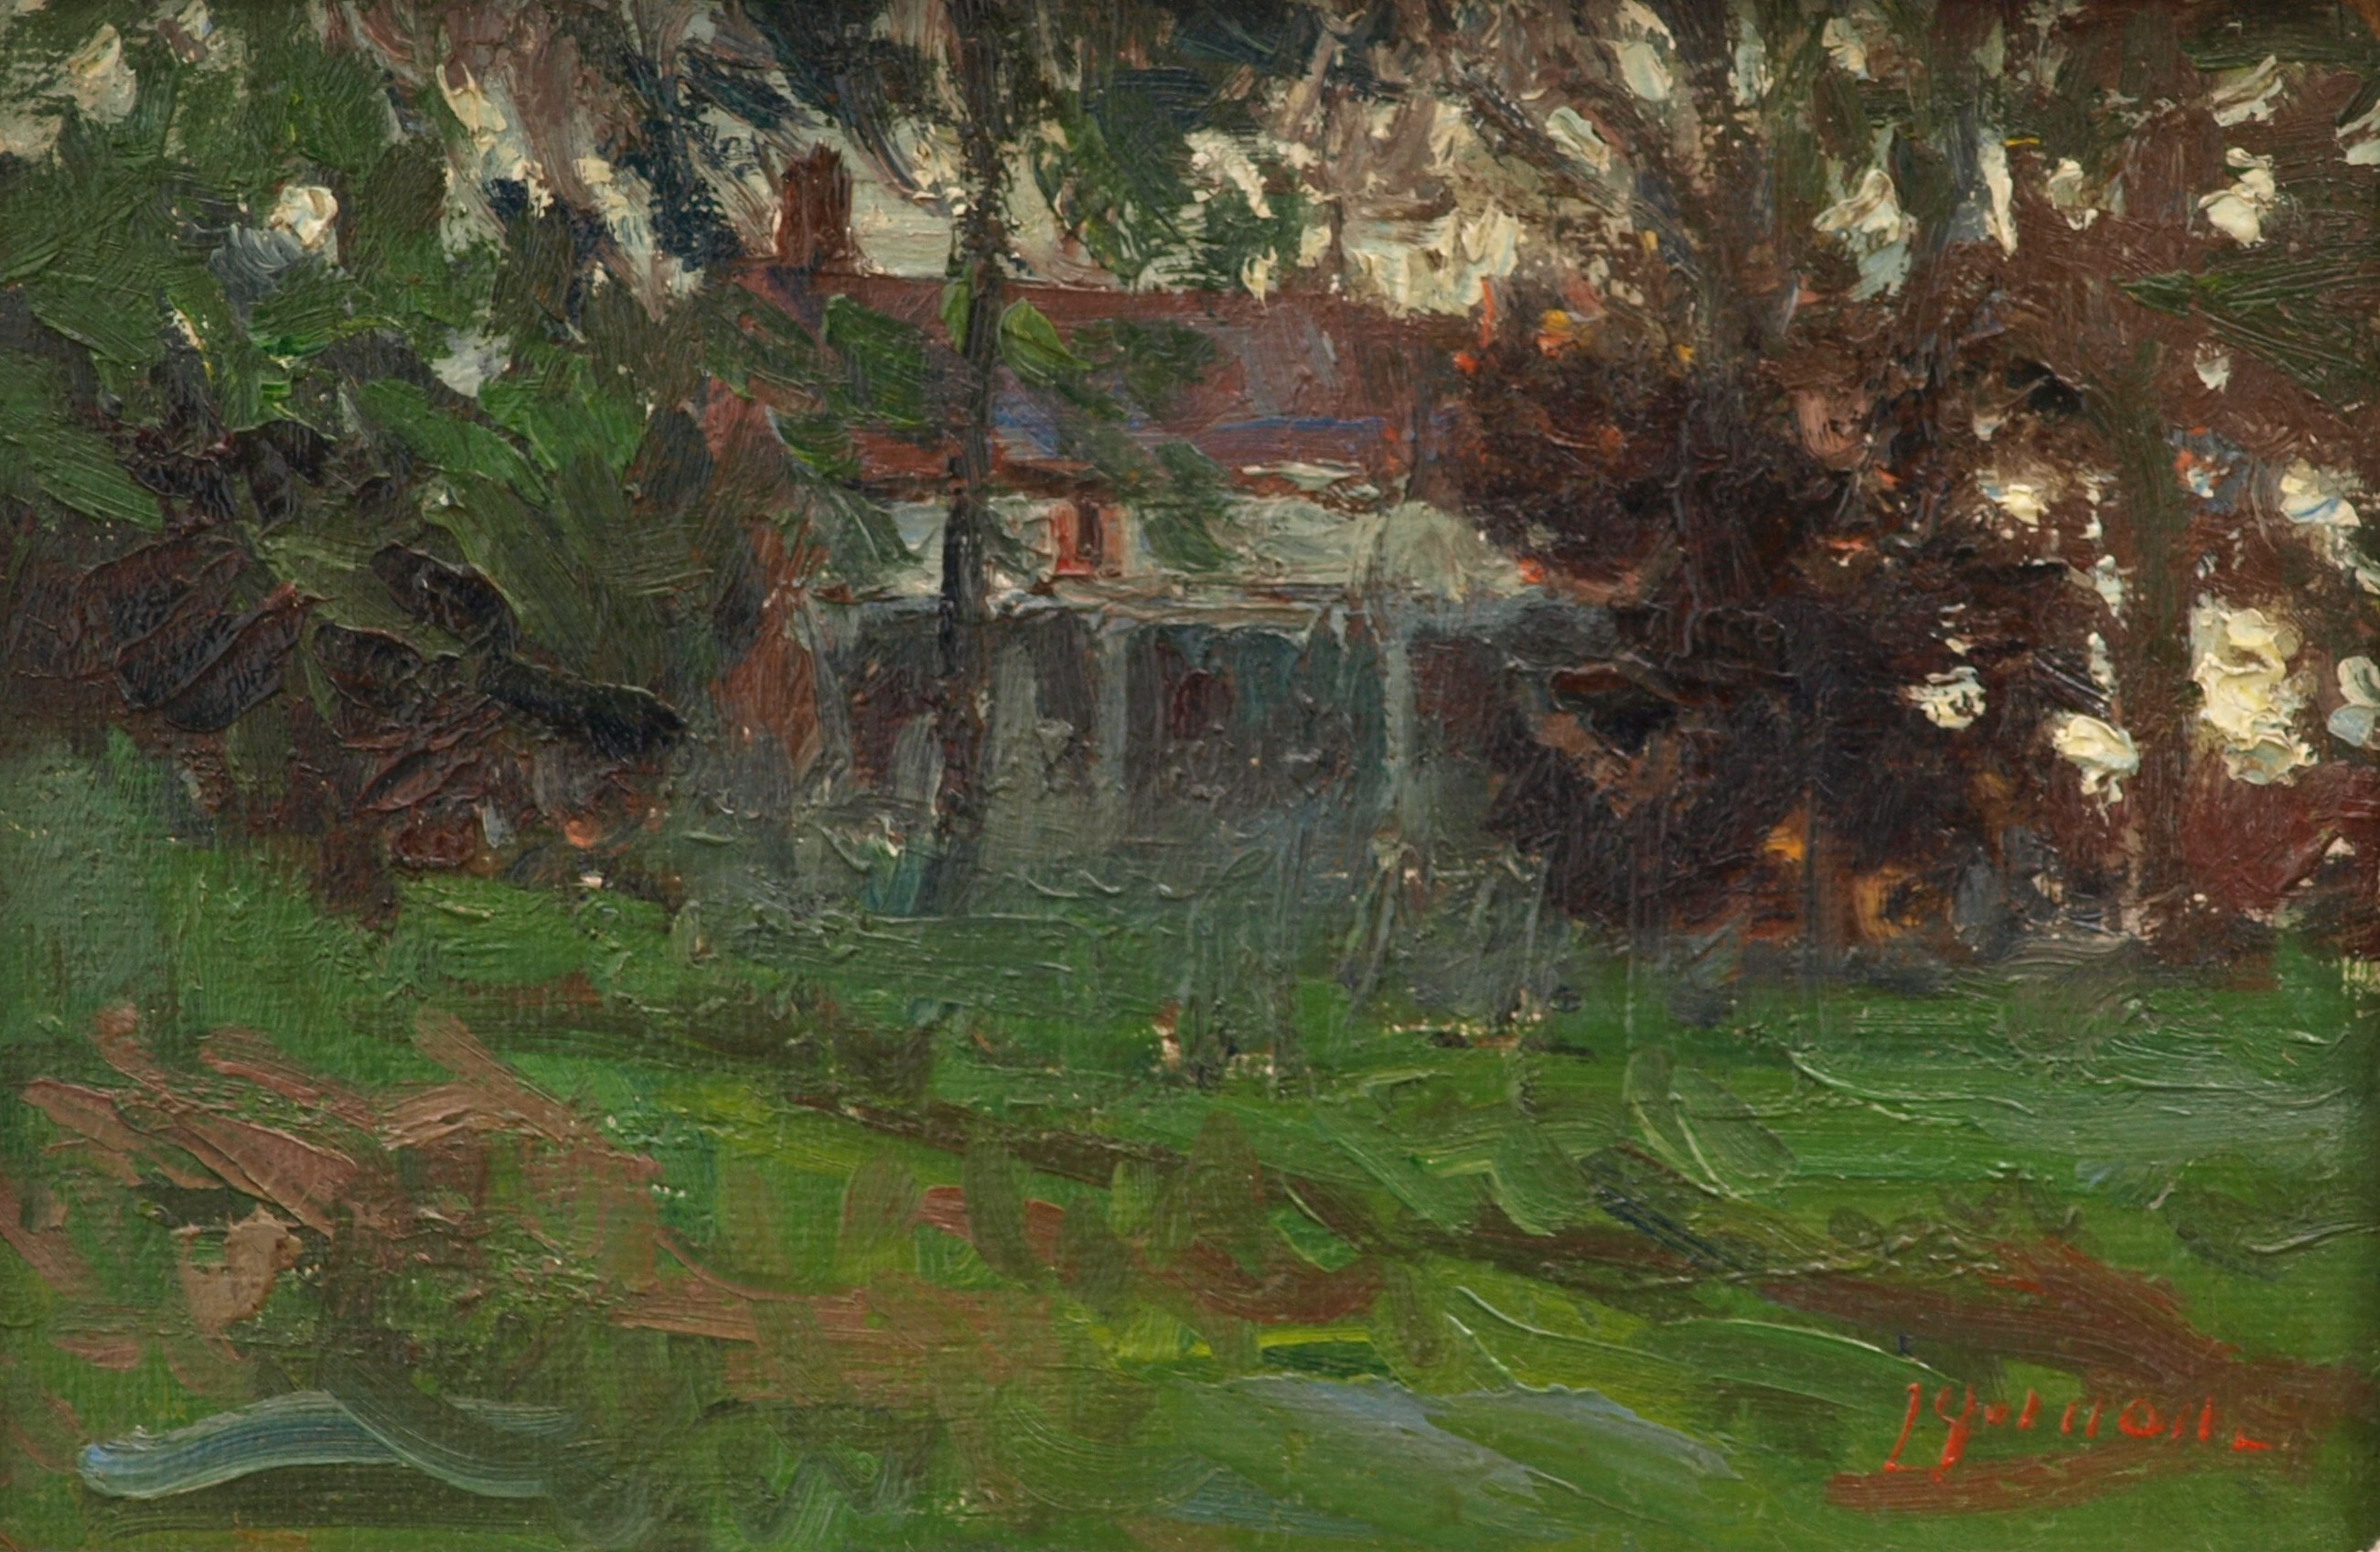 The Strid House, Oil on Panel, 8 x 12 Inches, by Bernard Lennon, $200